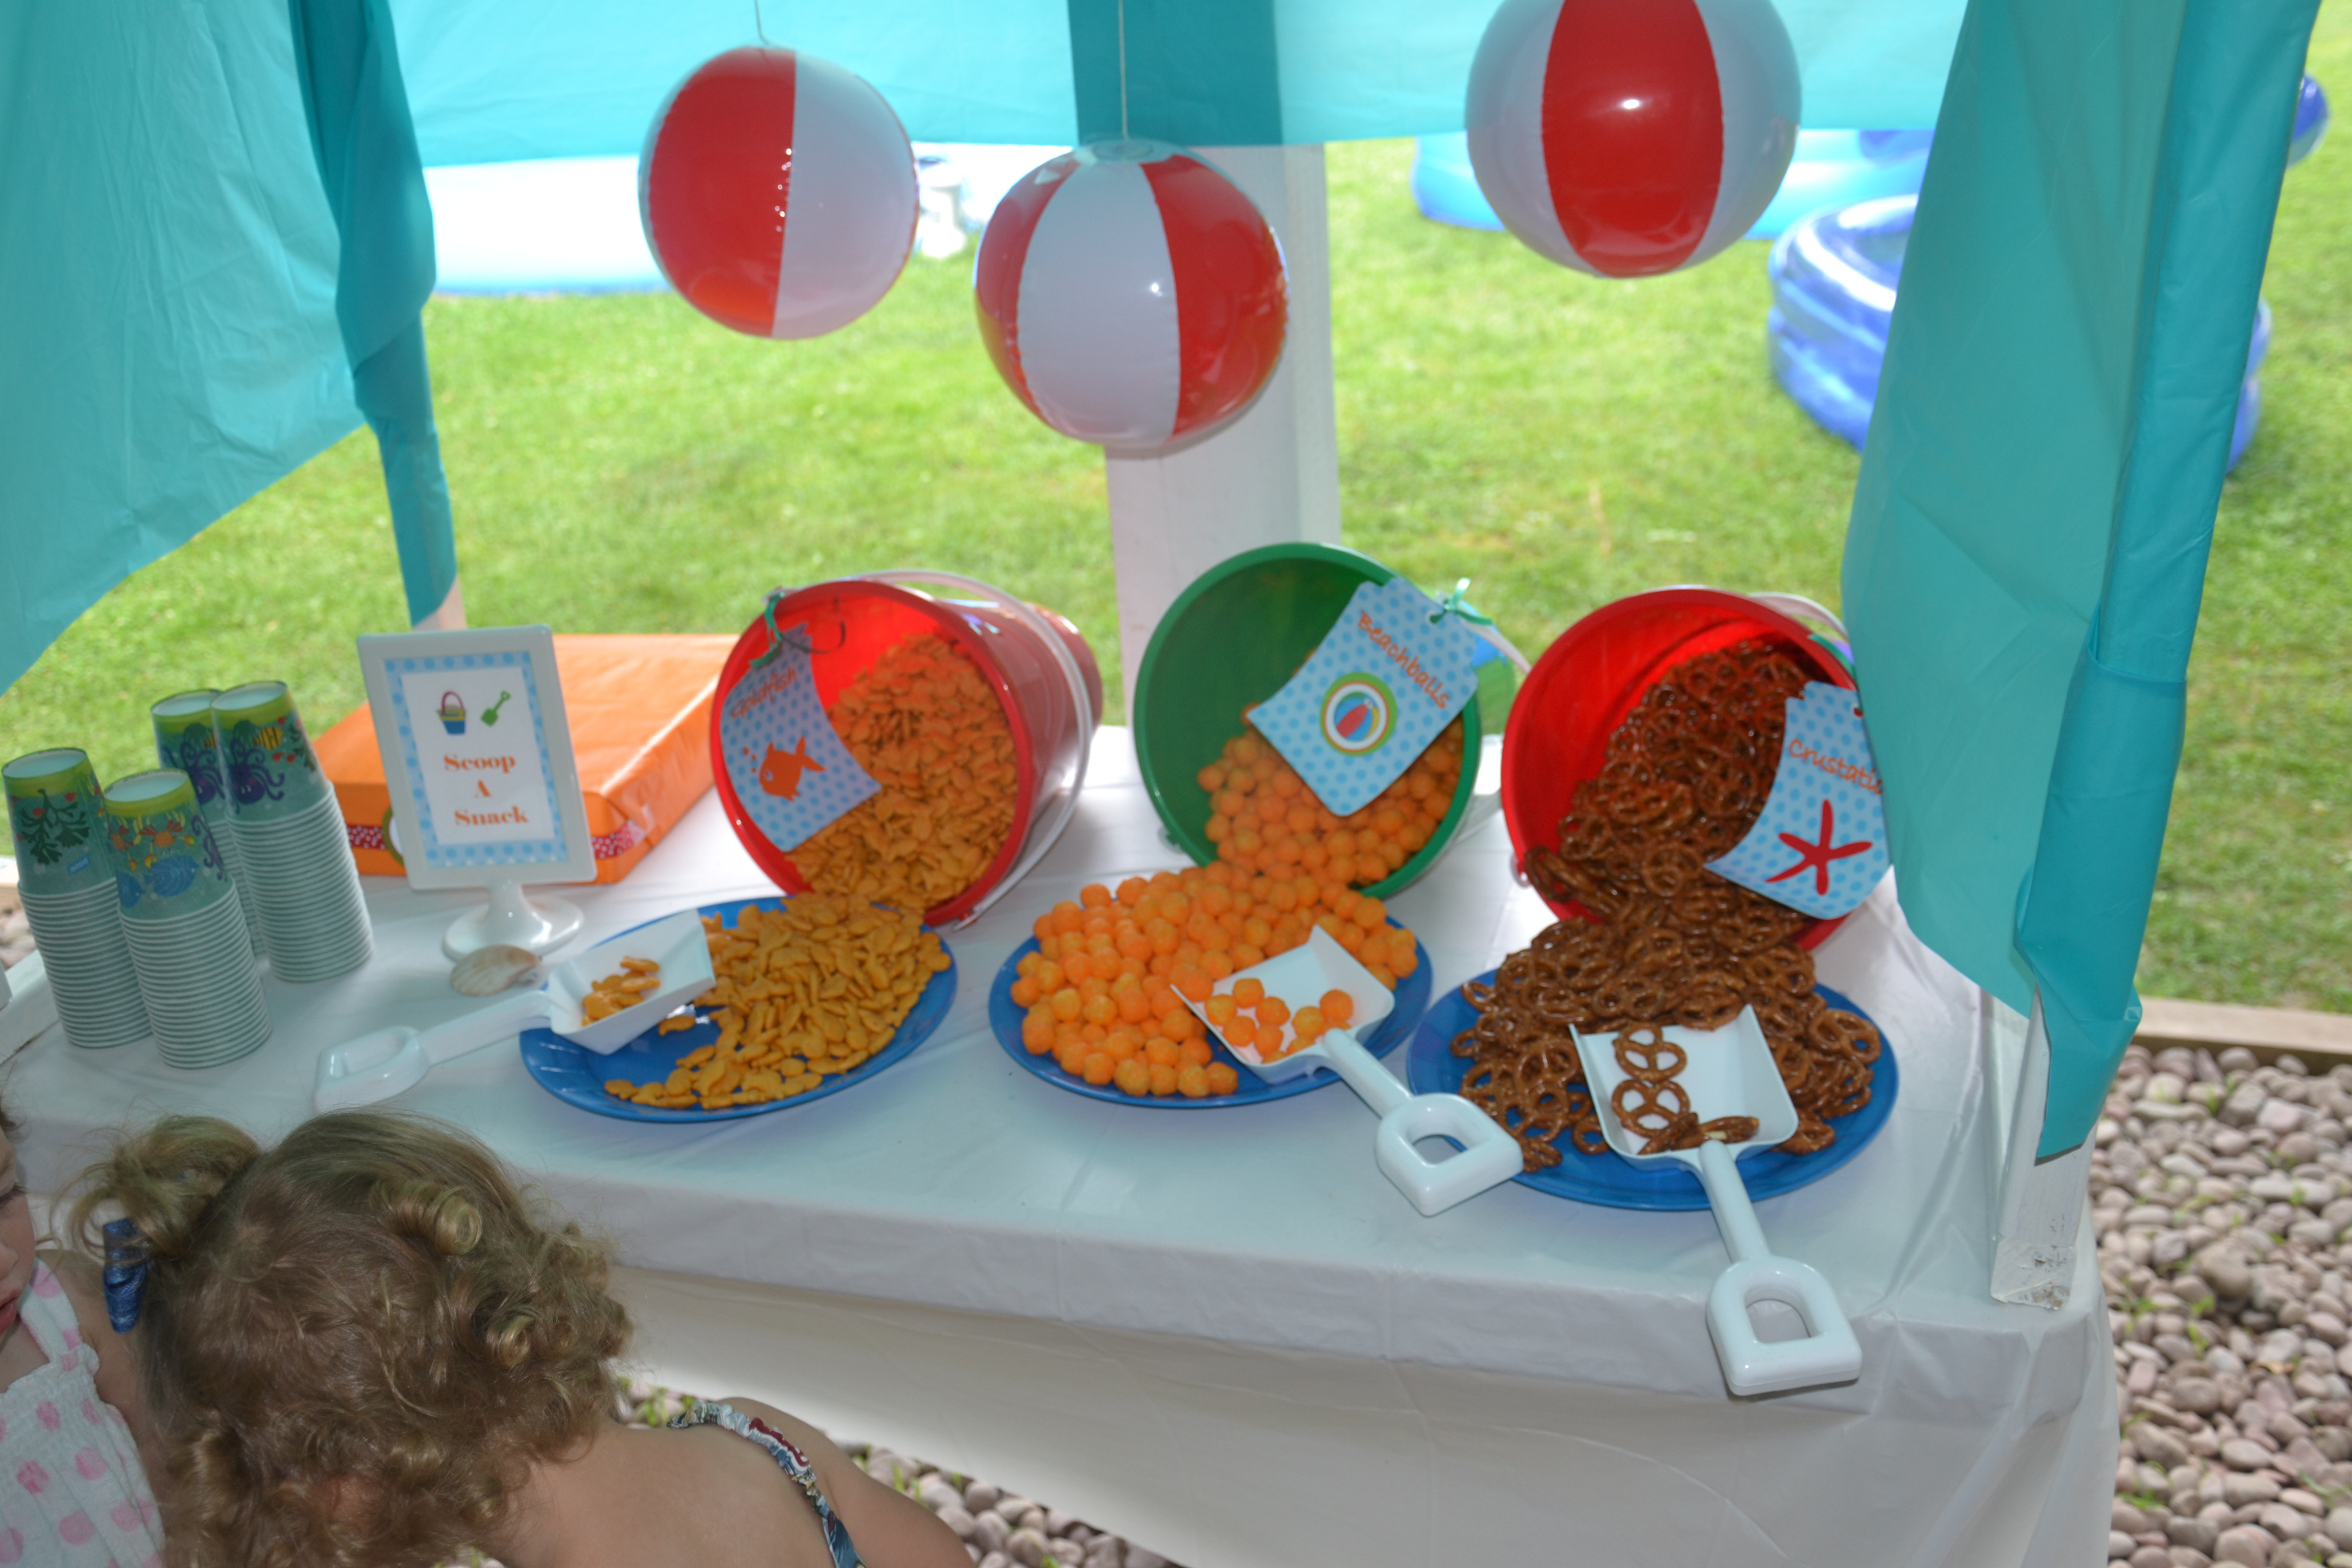 Pool Party Ideas For Toddlers  Party on a Bud  Ideas for Serving Summer Snacks